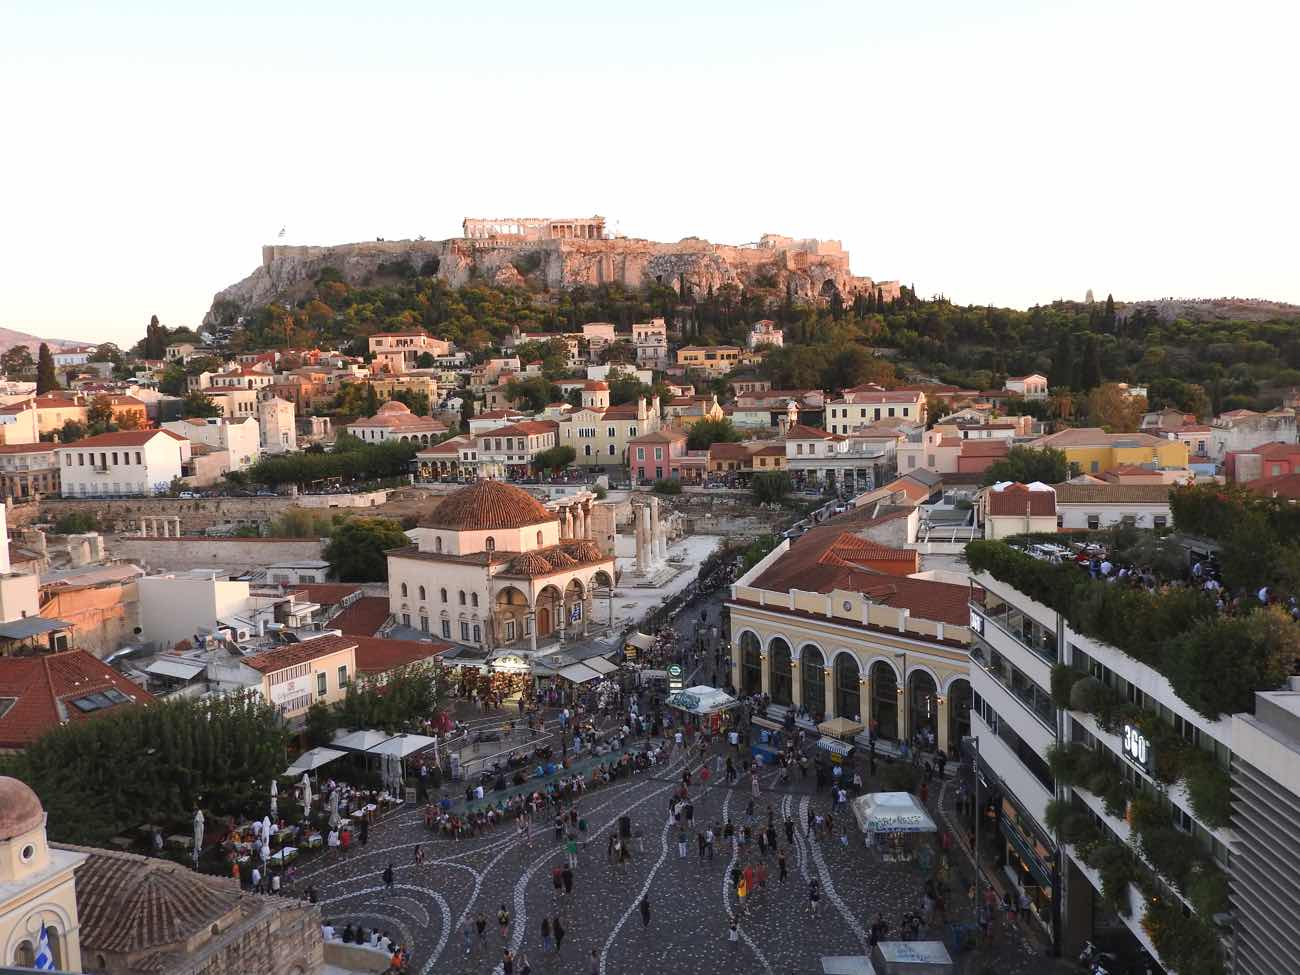 My 2-Week Greece Itinerary For An Independent Trip (Without Any Tours!)